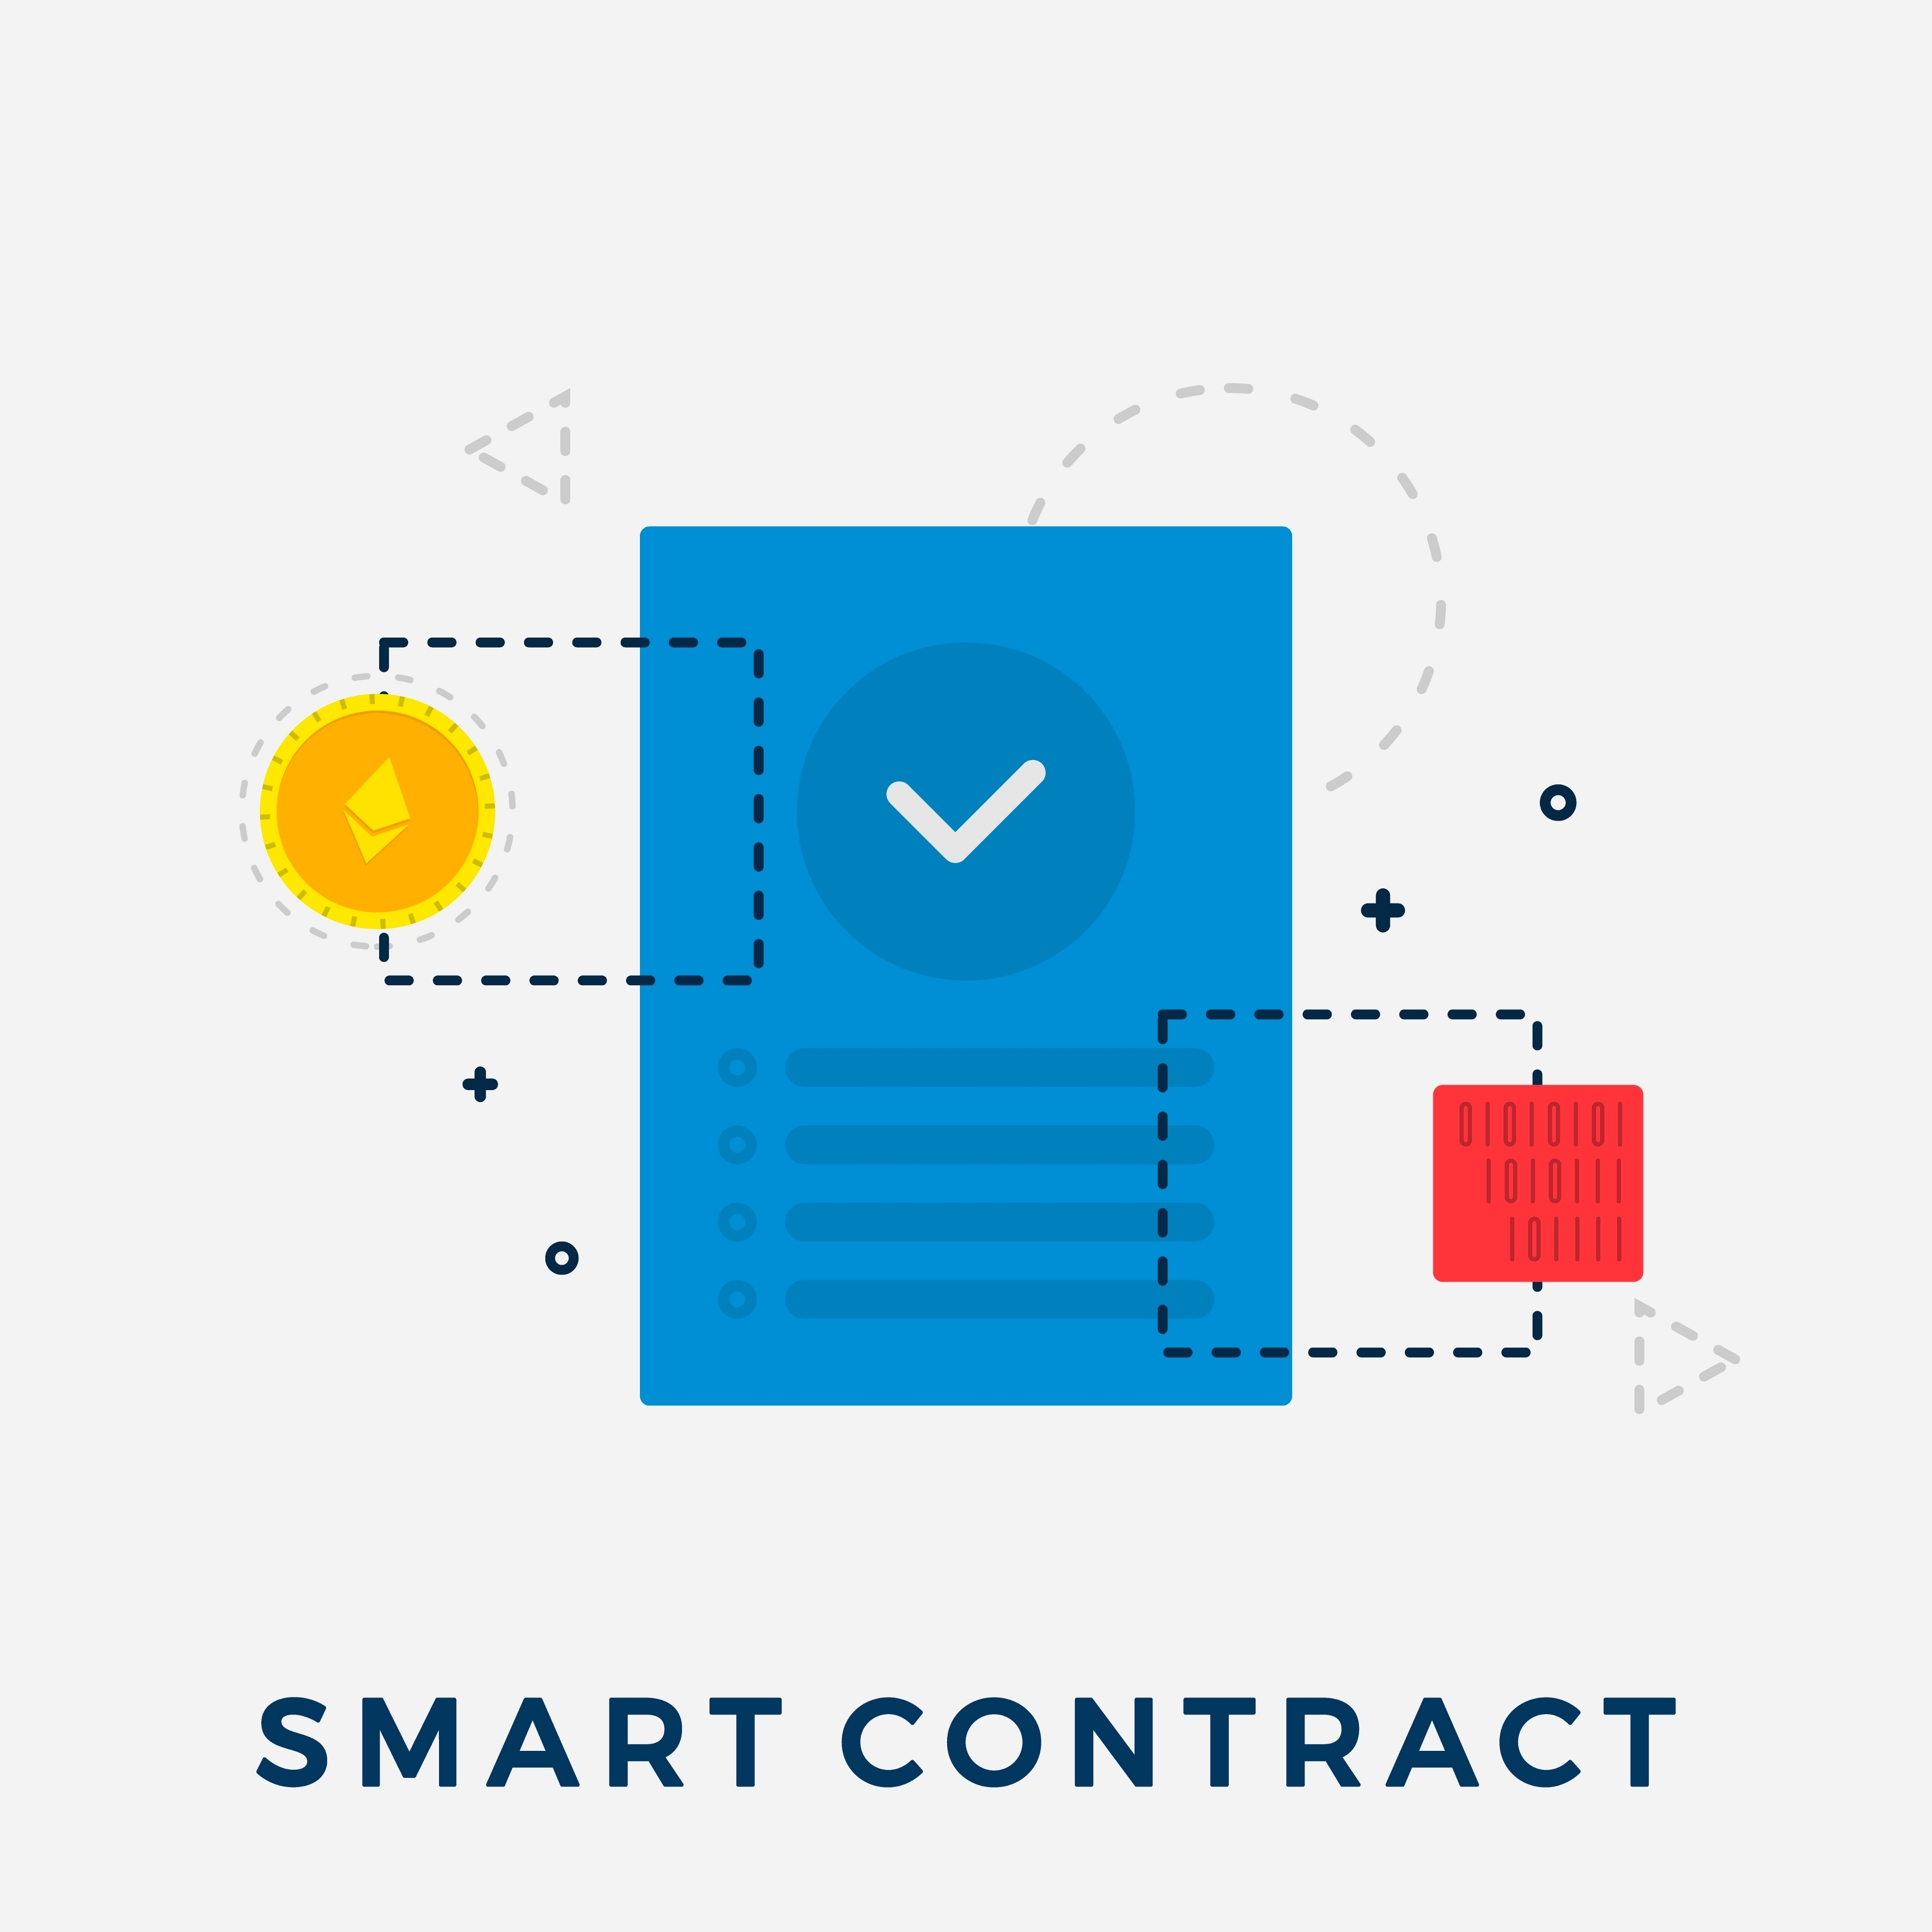 Deploy your own smart contract with Truffle and Ganache CLI